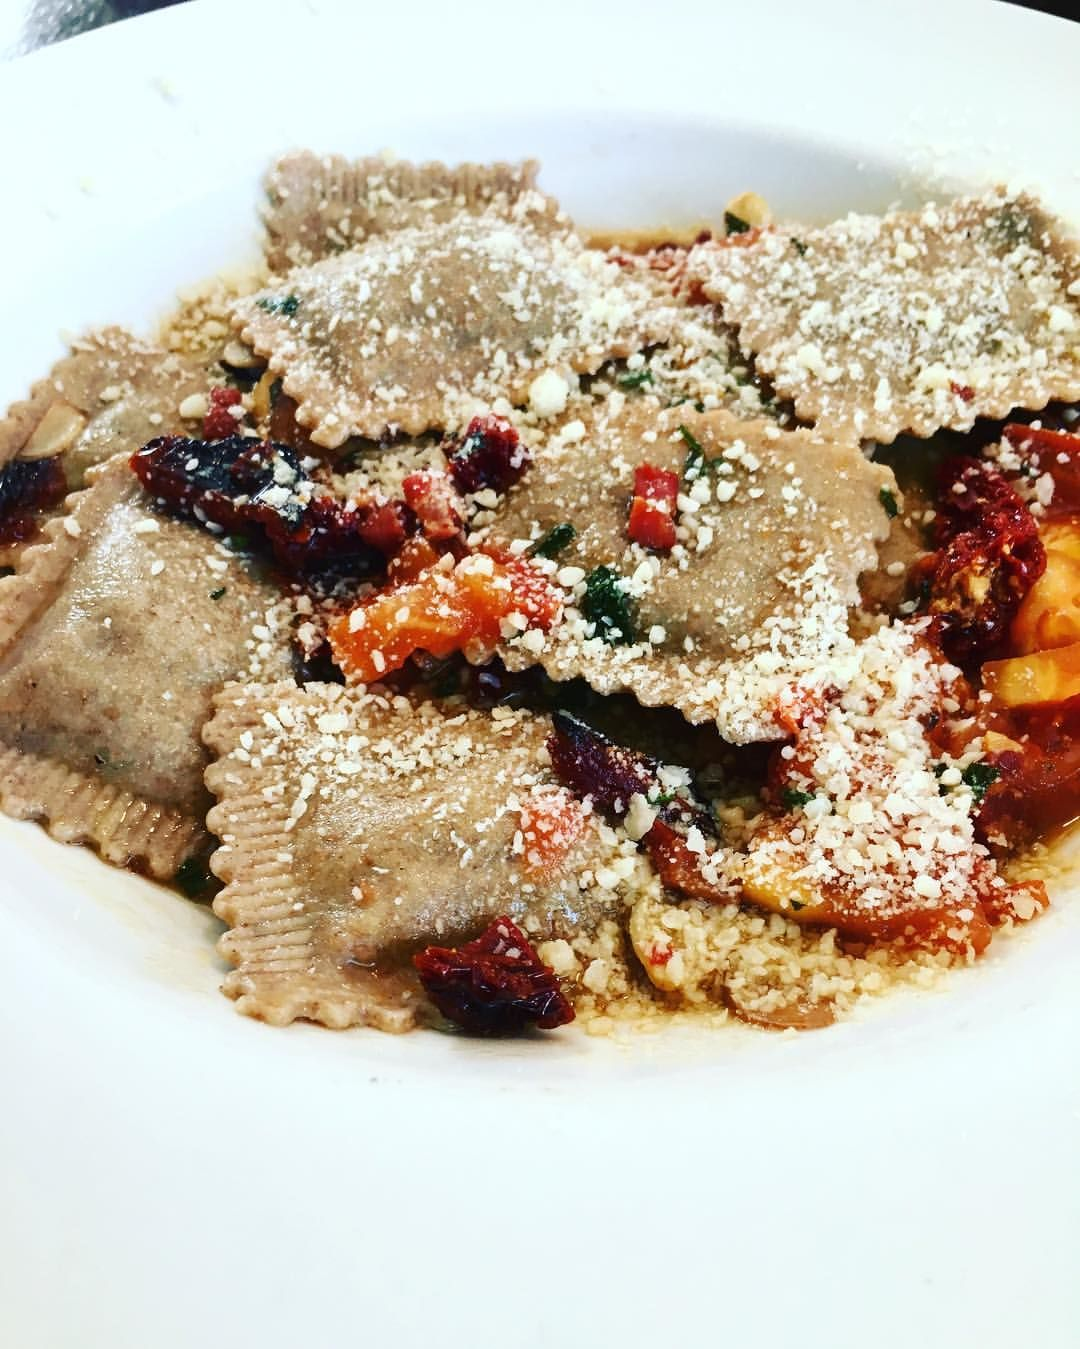 """Stopped at """"PastAmore"""" in Amherst NH on our way back home from our road trip. I got the Ravioli Montanara.  pinach & Ricotta multi-grain ravioli with pancetta, cherry tomatoes, onions, sun dried tomatoes & garlic in a white wine sauce. #pastamore #ravioli #italian #girlsweekend #roadtip"""